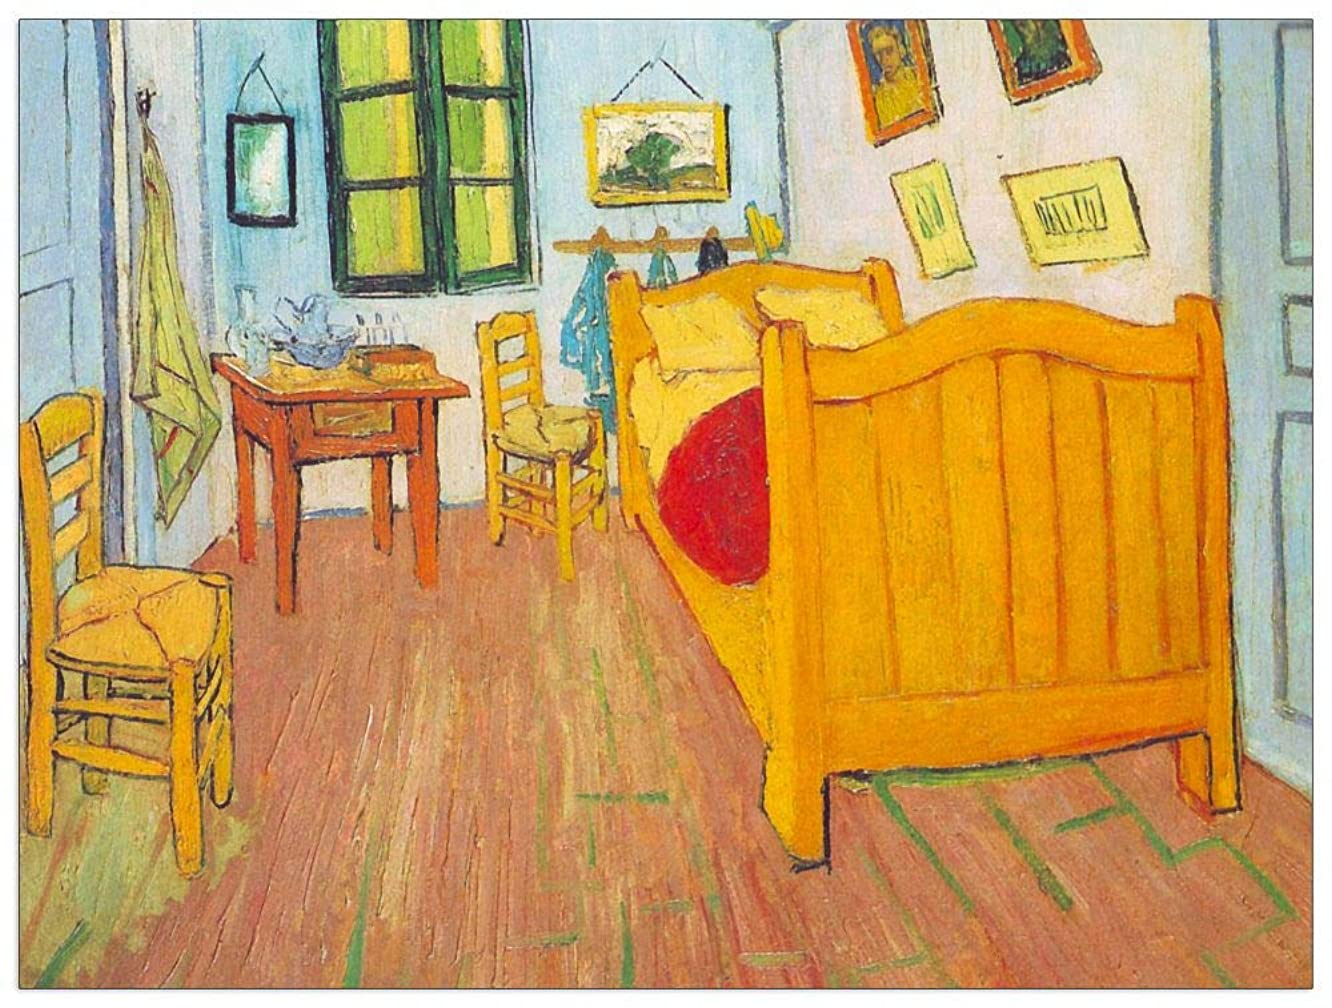 ArtPlaza TW90910 Van Gogh Vincent - The Bedroom in Arles. Saint-Remy Decorative Panel 35.5x27.5 Inch Multicolored